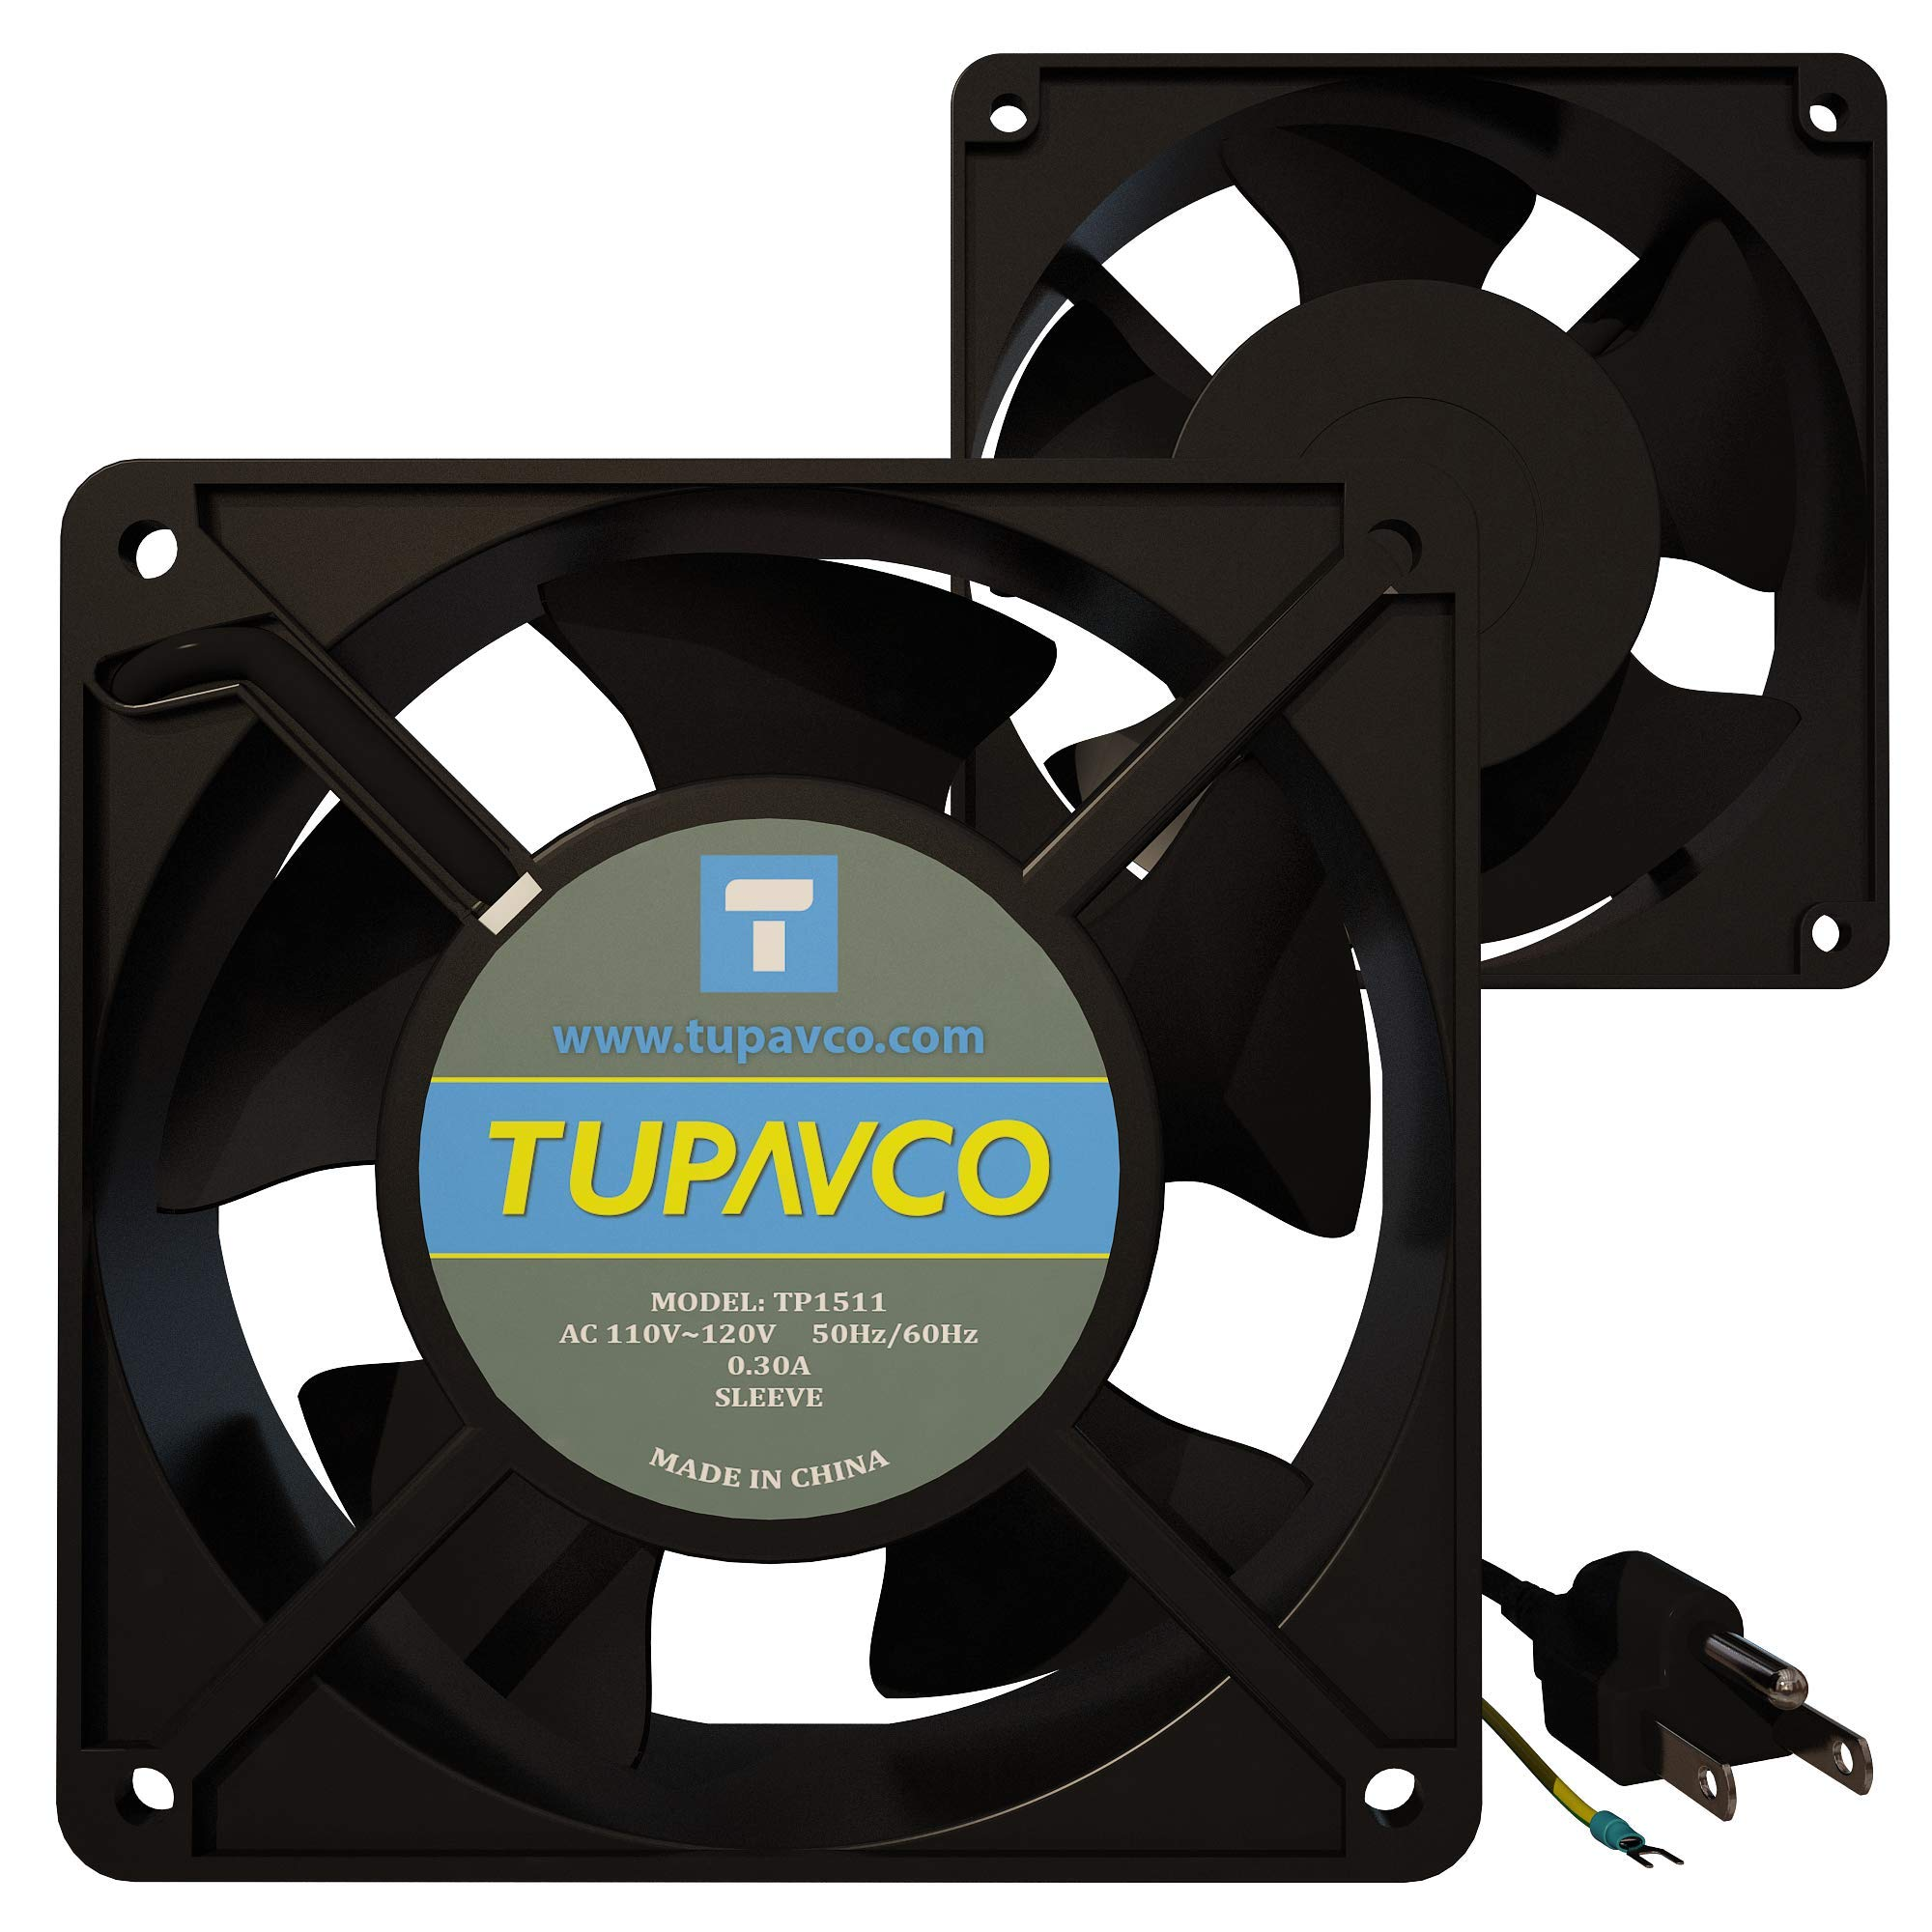 Network Cabinet Fan -Dual 2pc Kit for Server Rack Cooling -Pair of Roof Rackmount Muffin Fans 120mm 4in Steel Frame Quiet Ventilation with 110V AC/Ground Cable for Computer Equipment-Tupavco TP1511